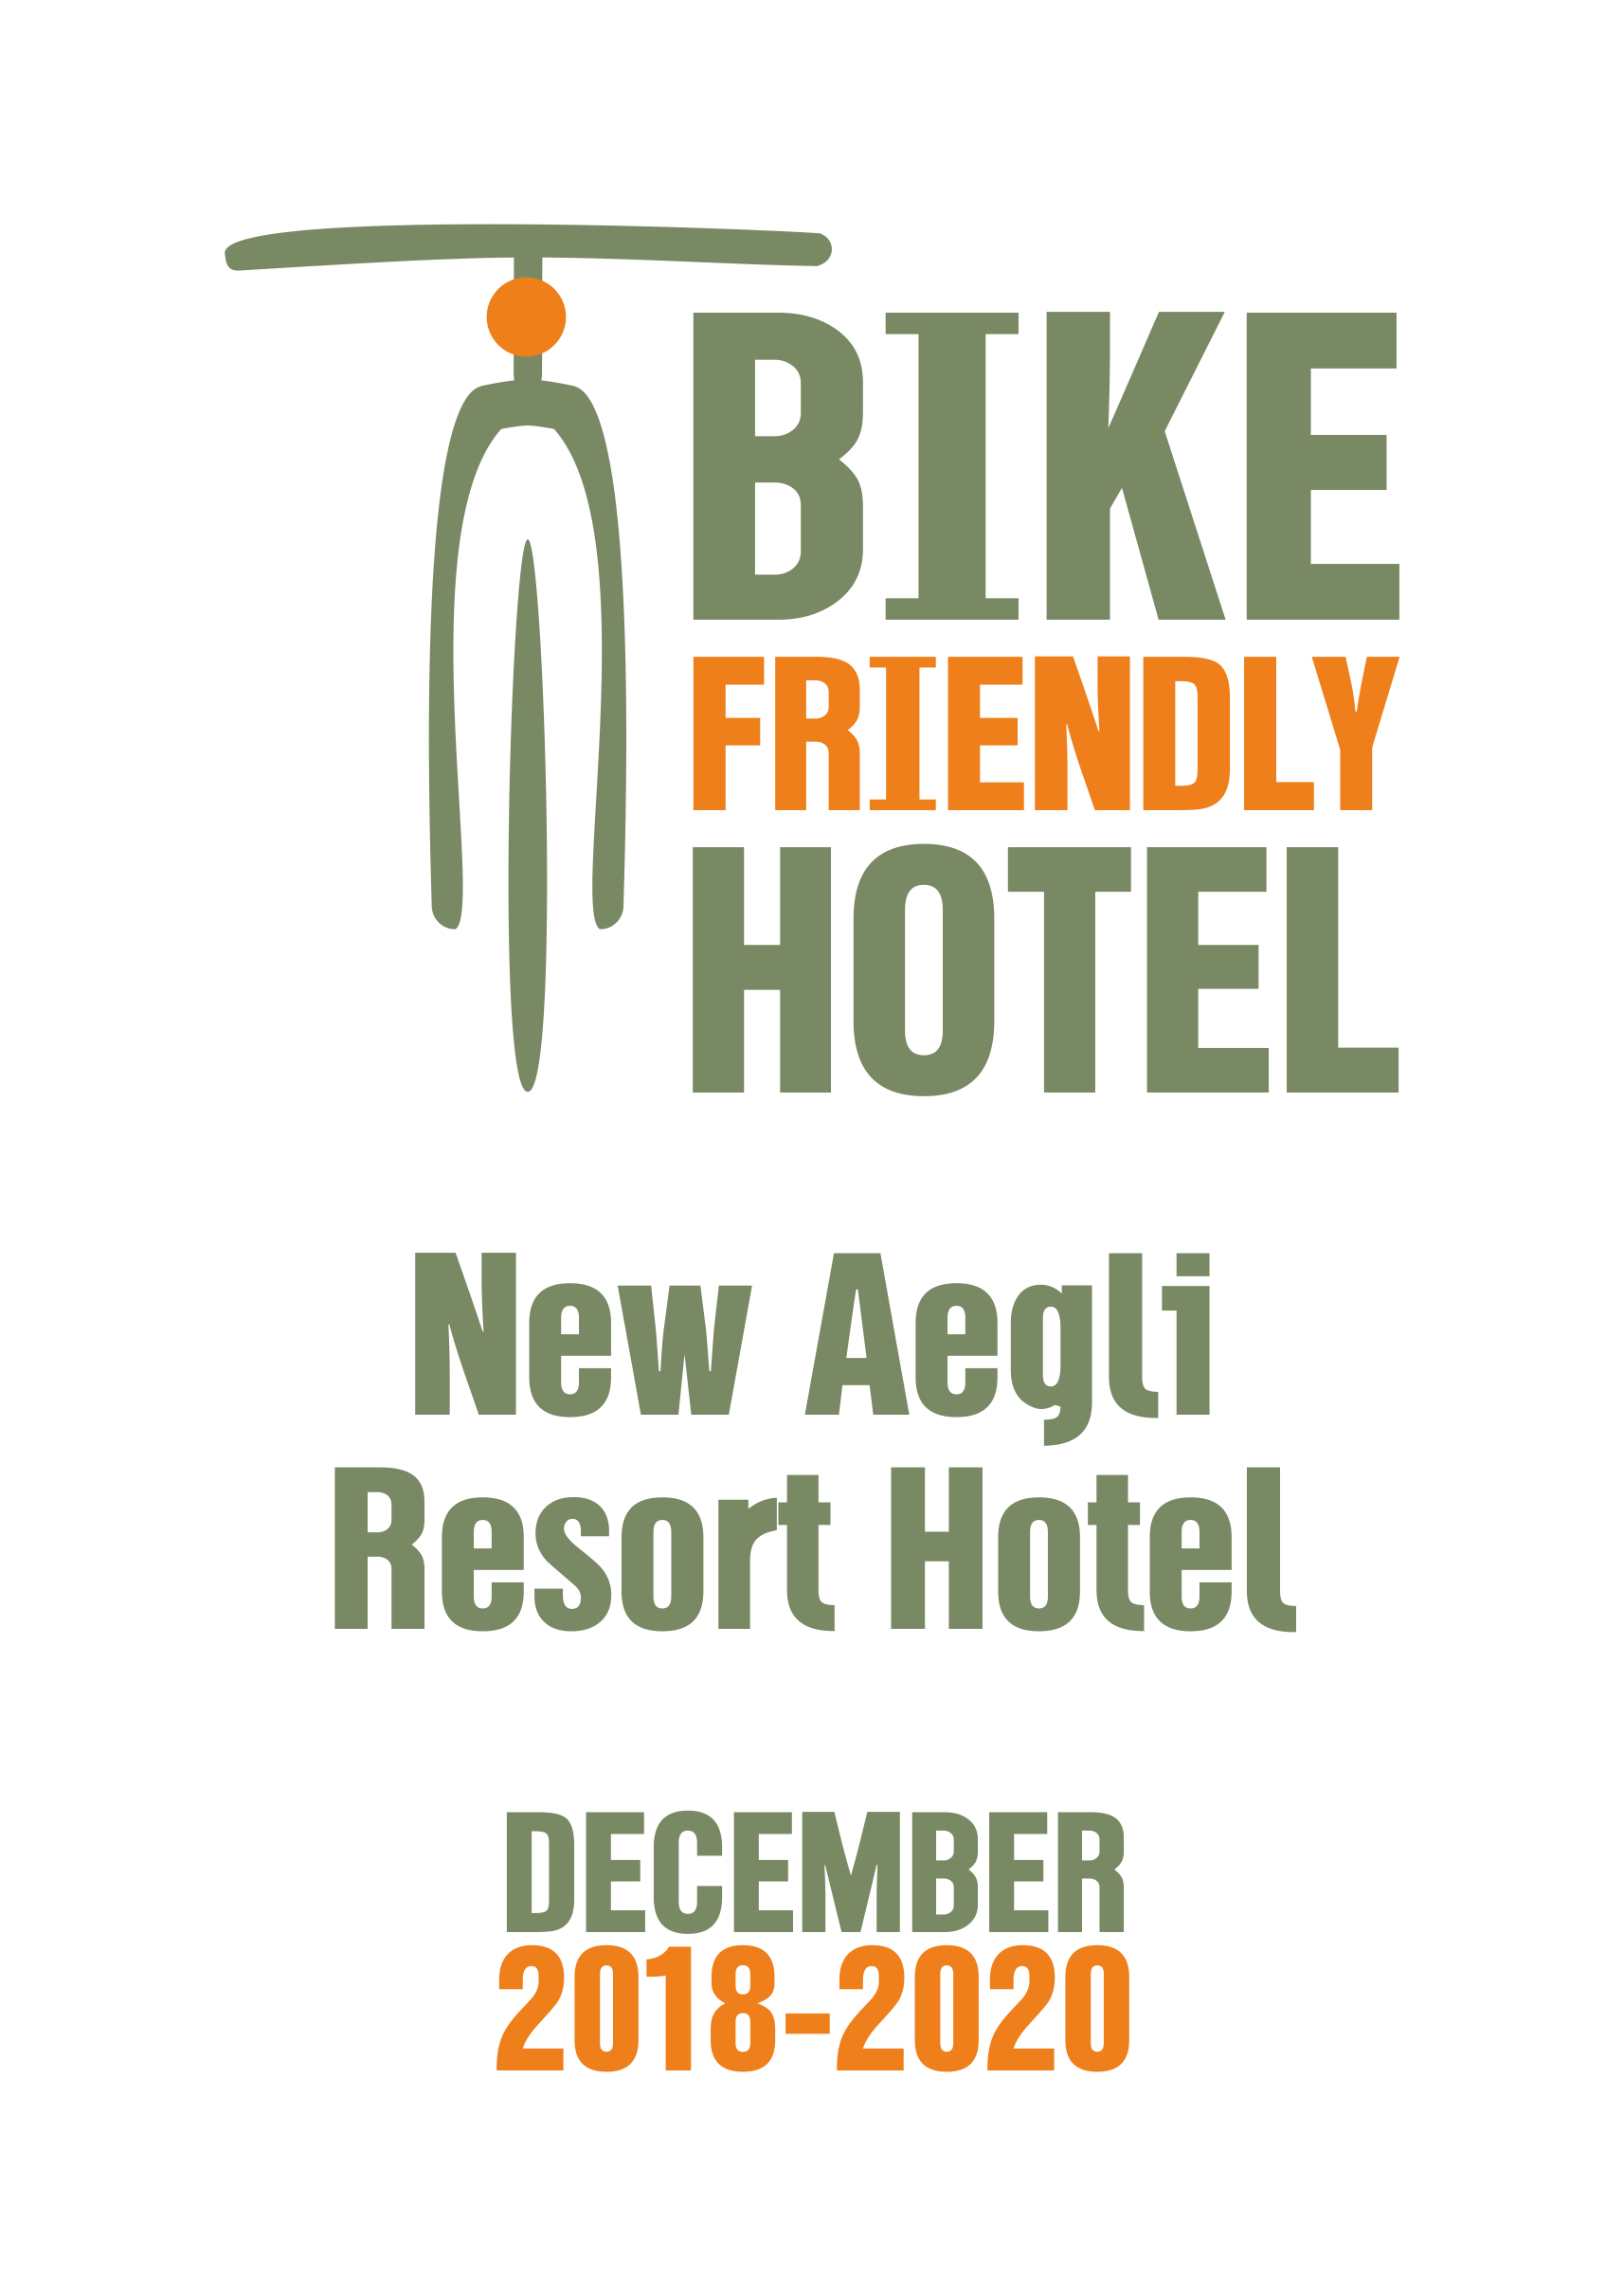 New Aegli Resort Hotel Dec2018-2020.png